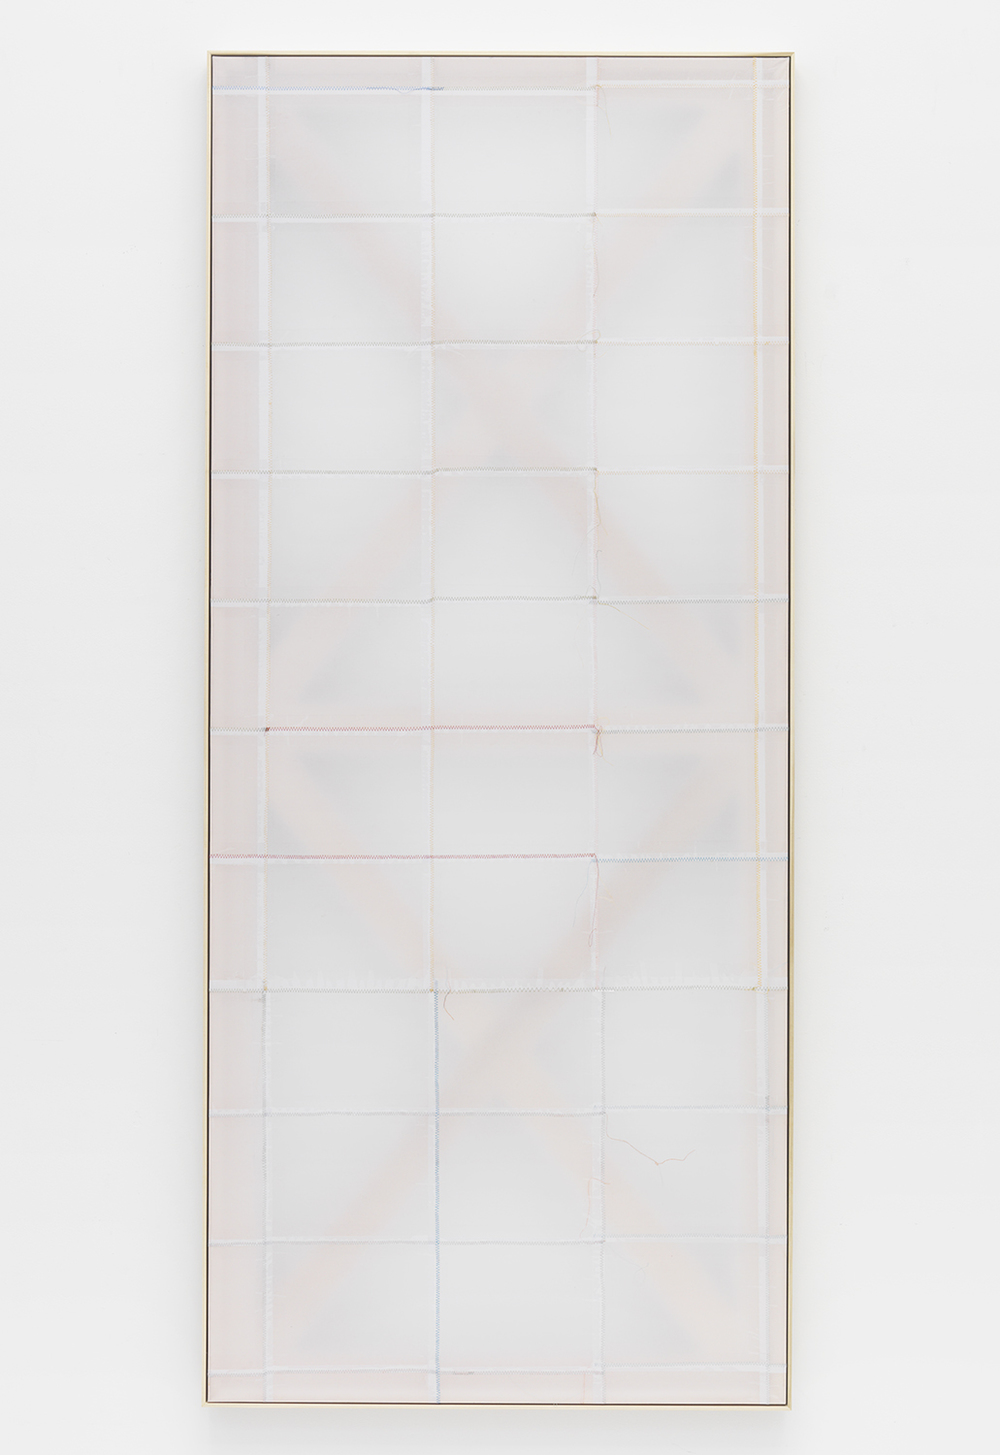 84 x 36 Ushering Spring 2, 2014 Paper, tape and thread on wooden stretcher 84 x 36 inches